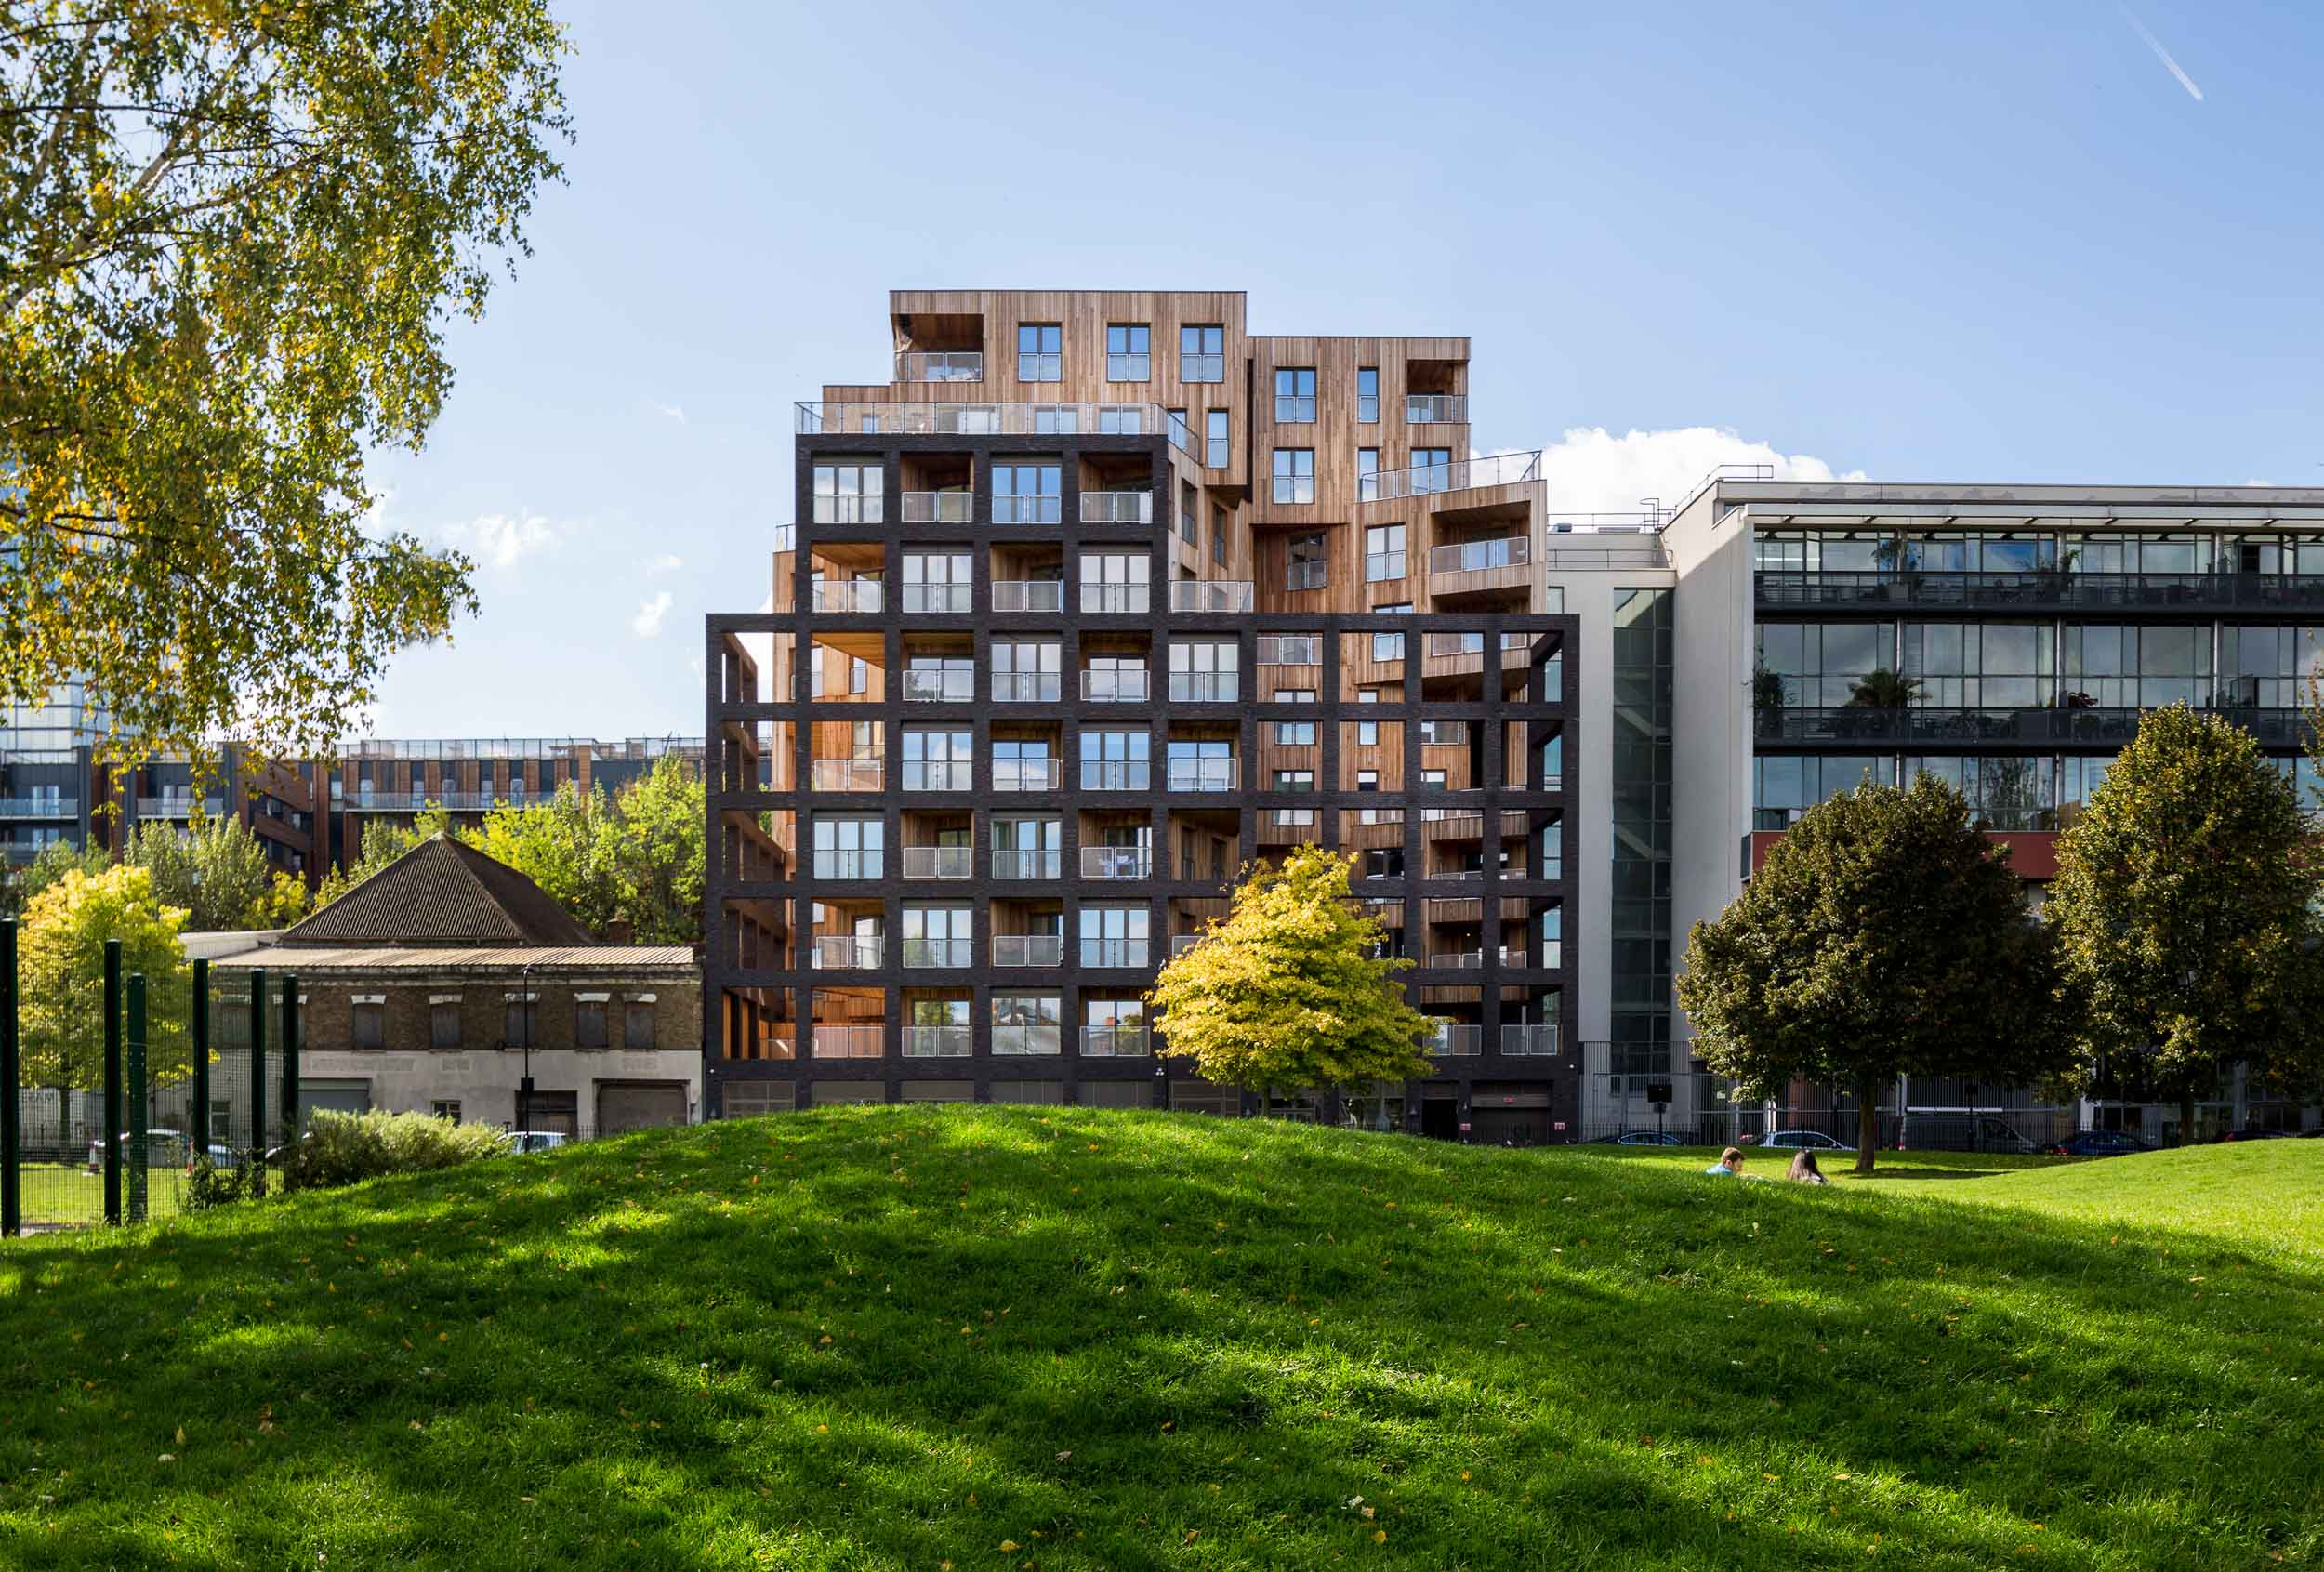 17-21 wenlock road london flats architectural exterior.jpg